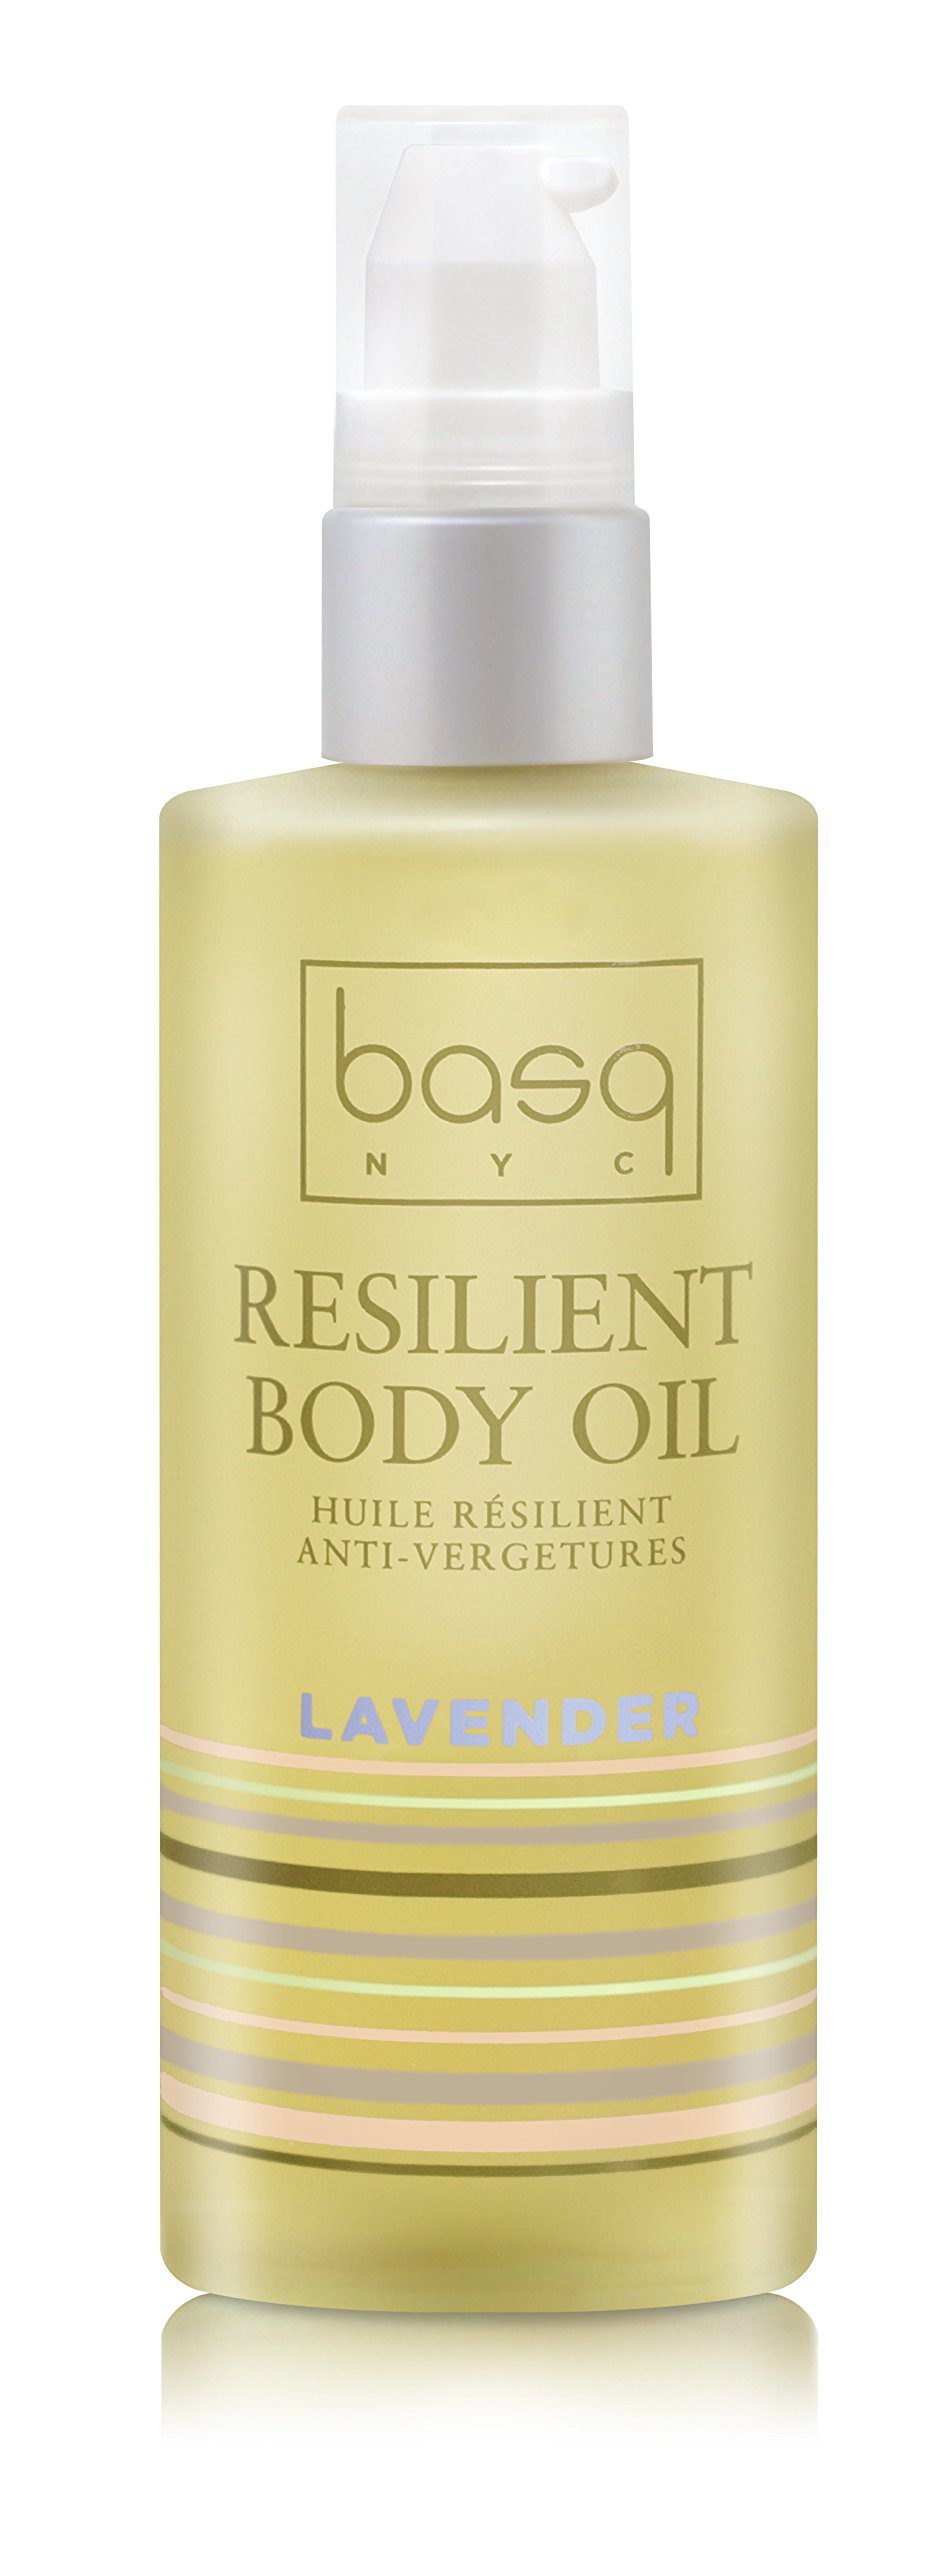 Basq Skin Care Resilient Body Stretch Mark Oil, Lavender, 4 Fluid Ounce by Basq (Image #1)